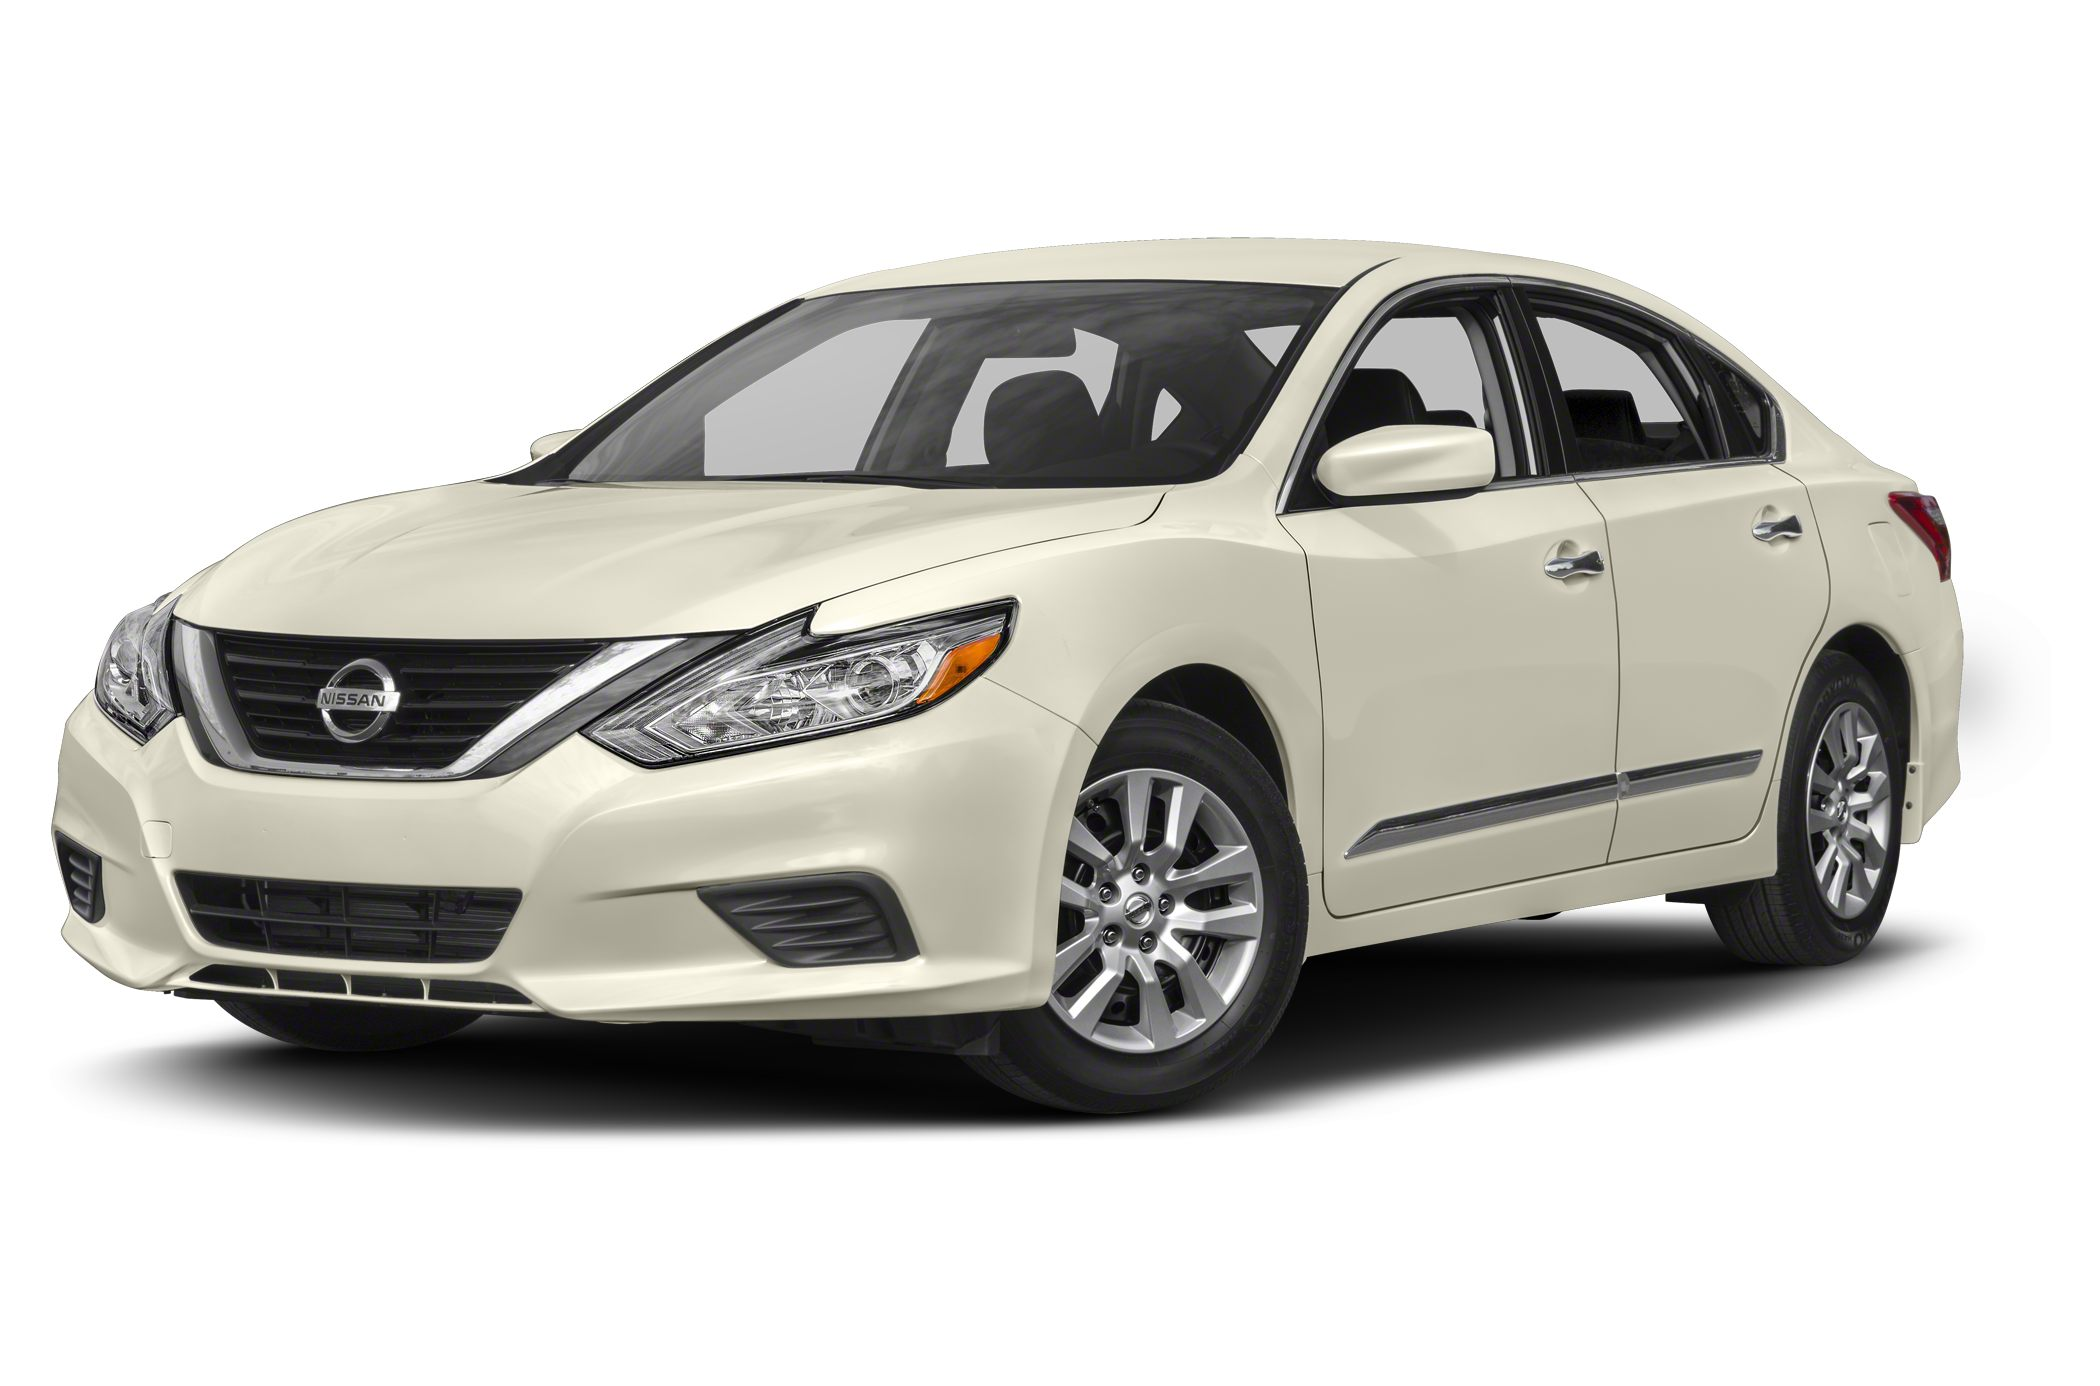 Nissan Altima News Photos And Buying Information Autoblog